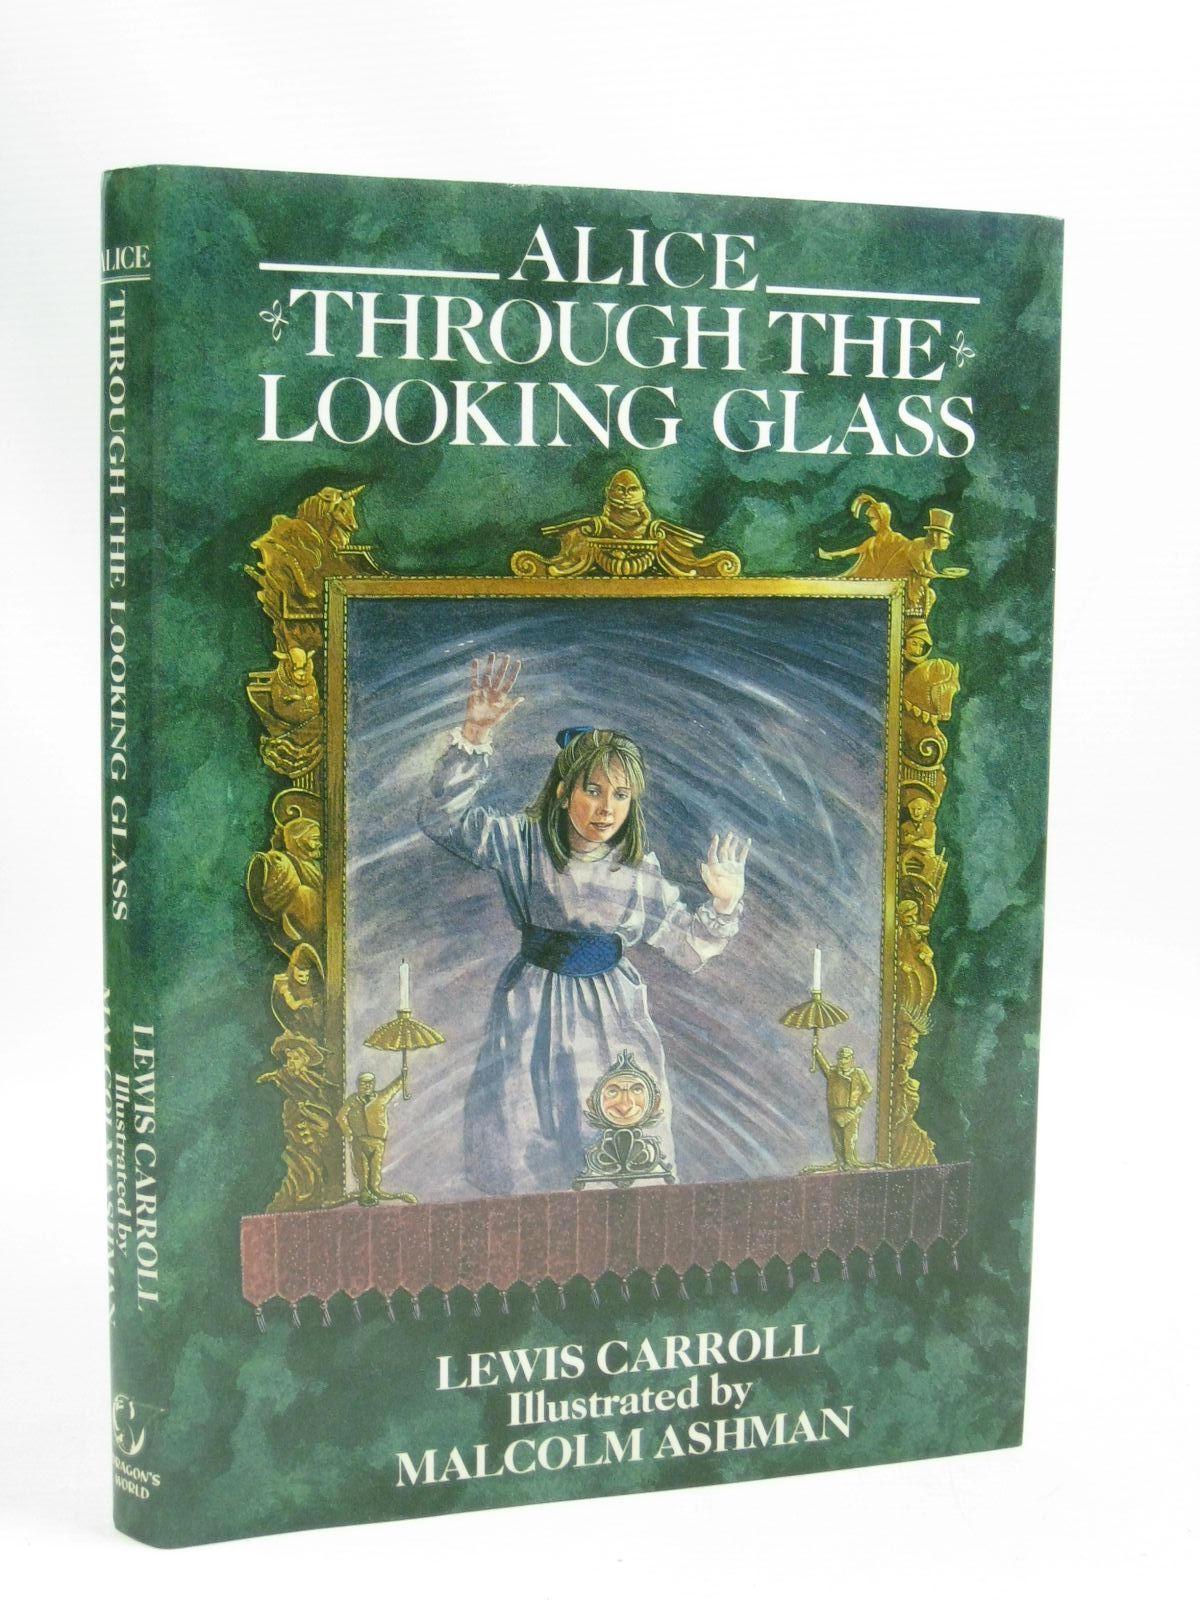 Photo of ALICE THROUGH THE LOOKING GLASS written by Carroll, Lewis illustrated by Ashman, Malcolm published by Dragon's World (STOCK CODE: 1405440)  for sale by Stella & Rose's Books